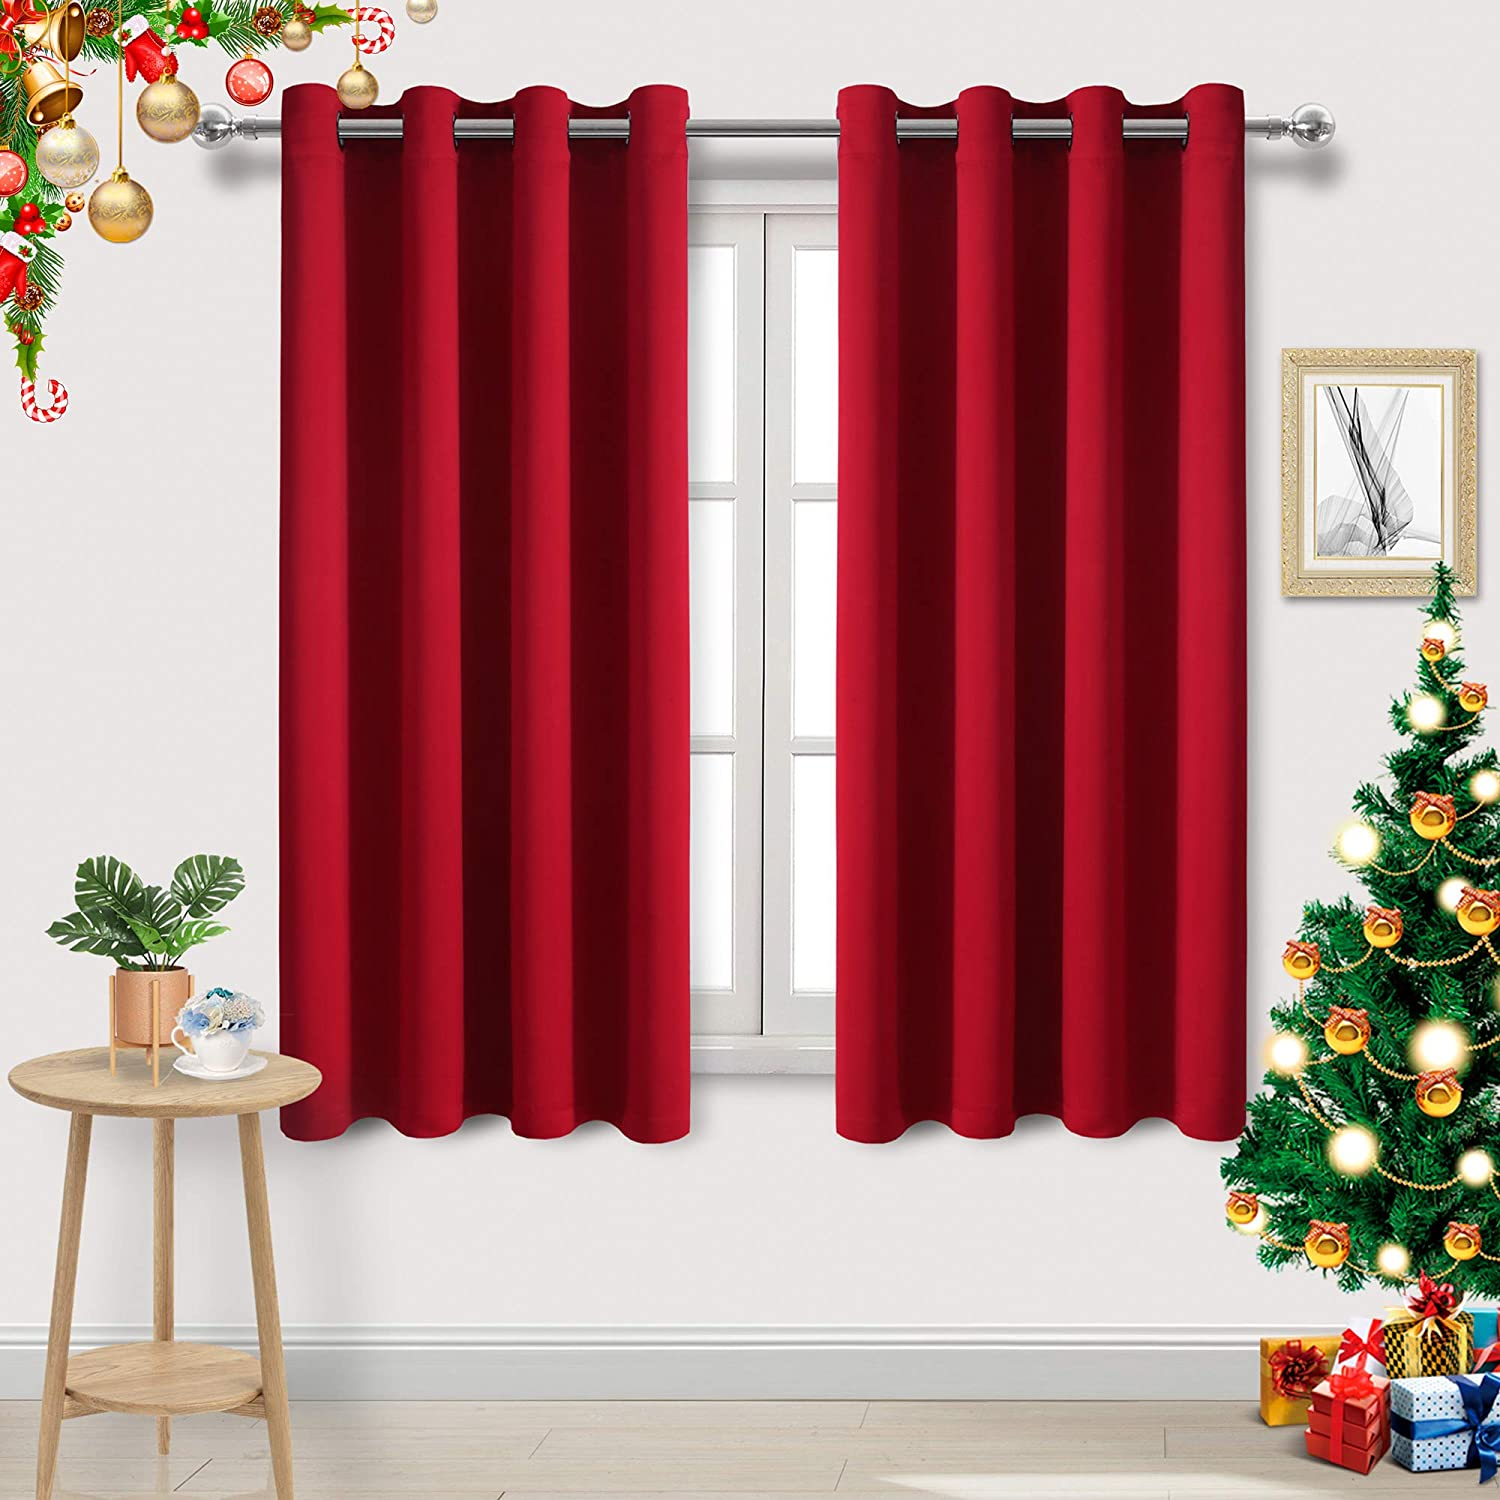 DWCN Red Room Darkening Blackout Curtains - Thermal Insulated Privacy Energy Saving Window Curtain Drapes 52 x 63 inch Length, Set of 2 Bedroom Living Room Curtains